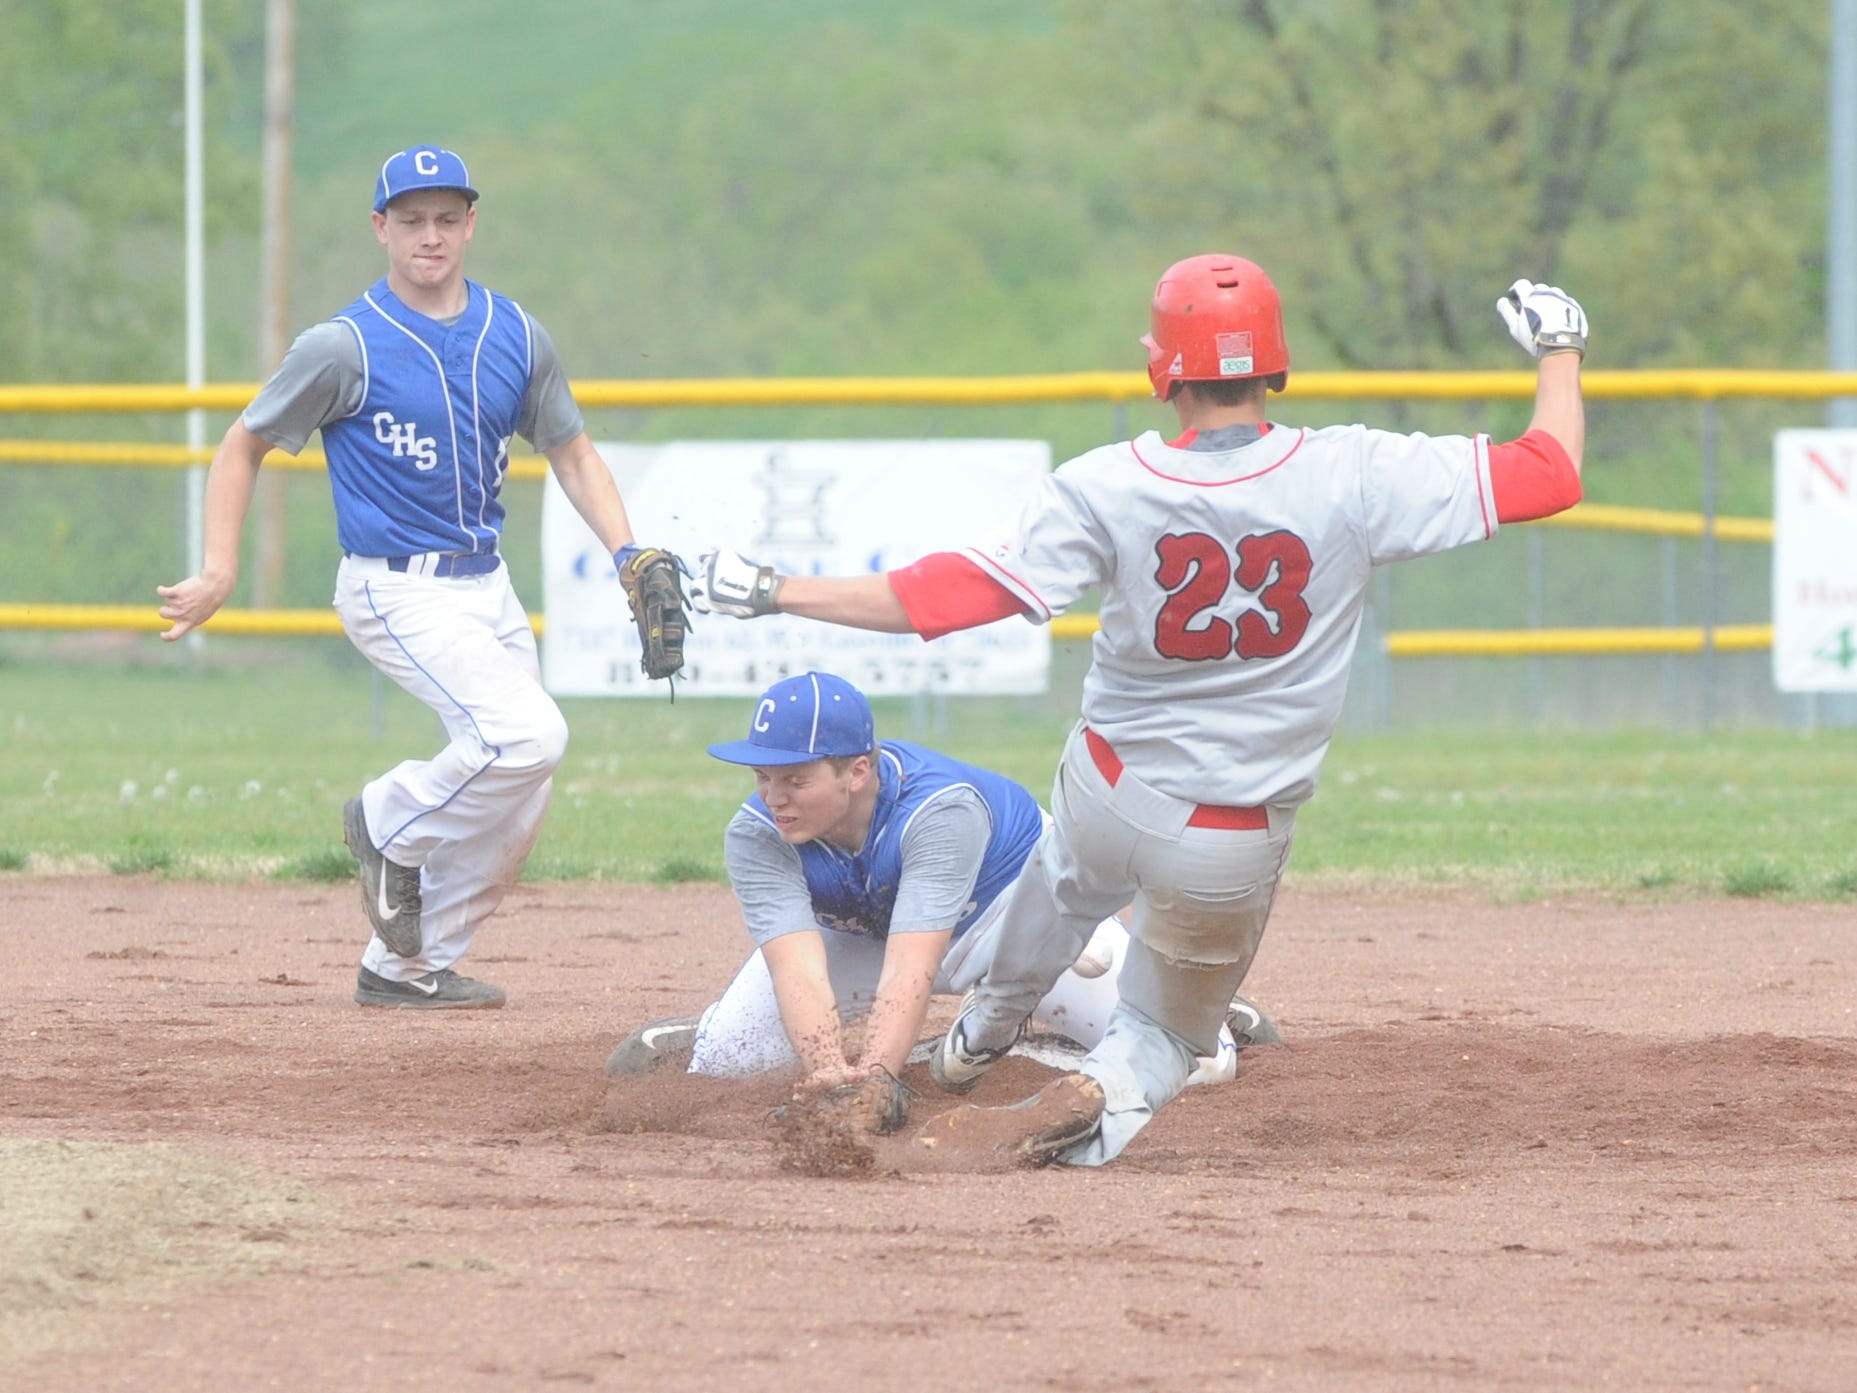 Cotter second baseman Maddux Adams, middle, takes a throw on a steal attempt by Flippin's Dean Smyser, right, while shortstop Shawn White backs up the throw during the Bobcats' 2-1 victory over the Warriors earlier this season at Cotter. The two teams meet Monday in the district final at Harrison.